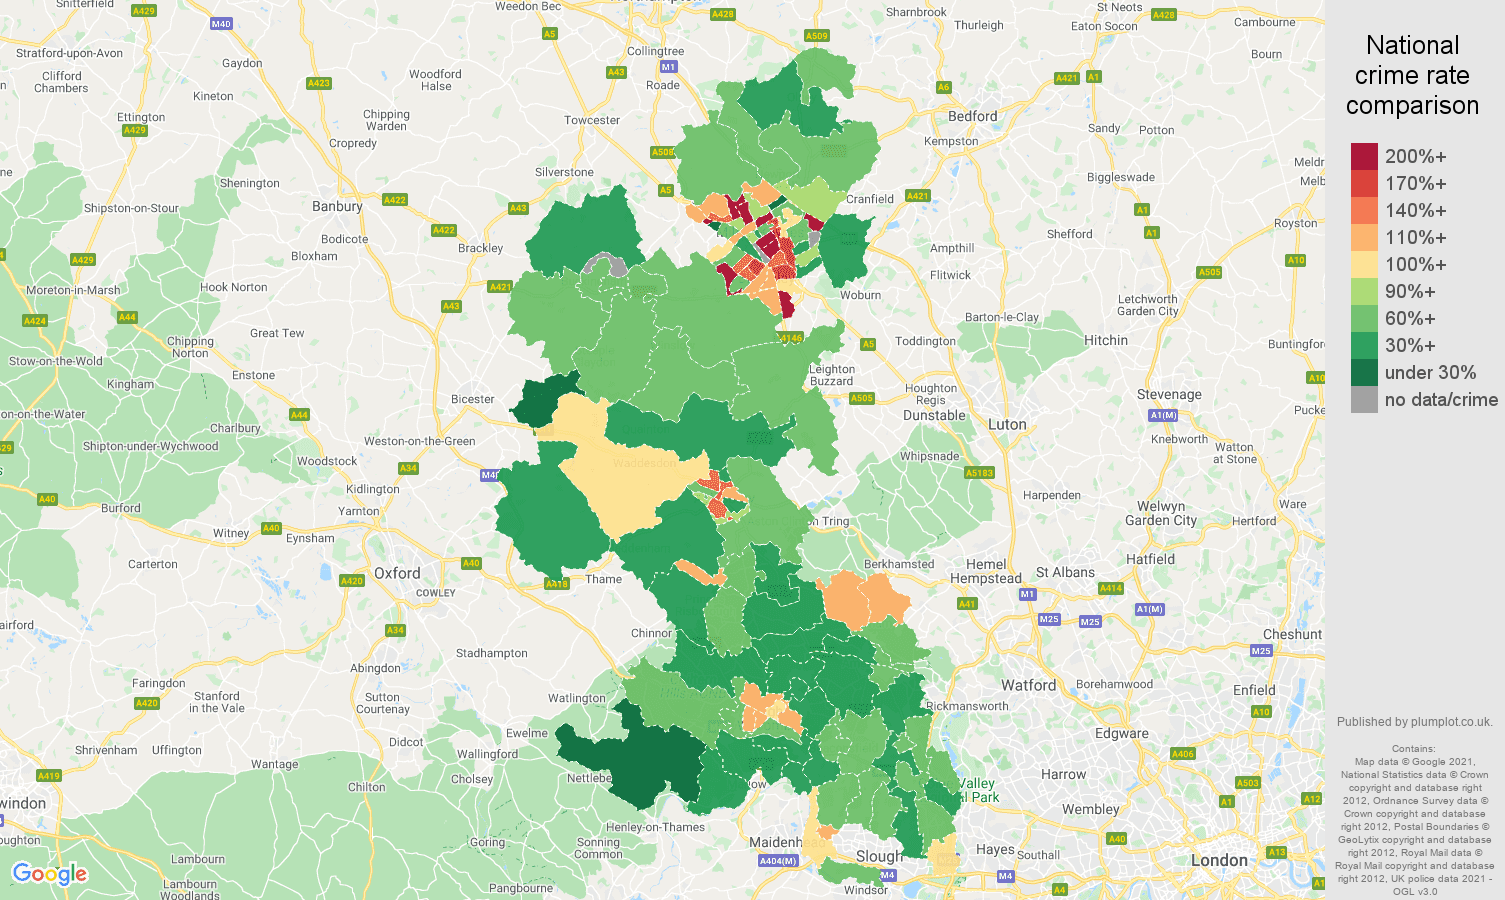 Buckinghamshire violent crime rate comparison map